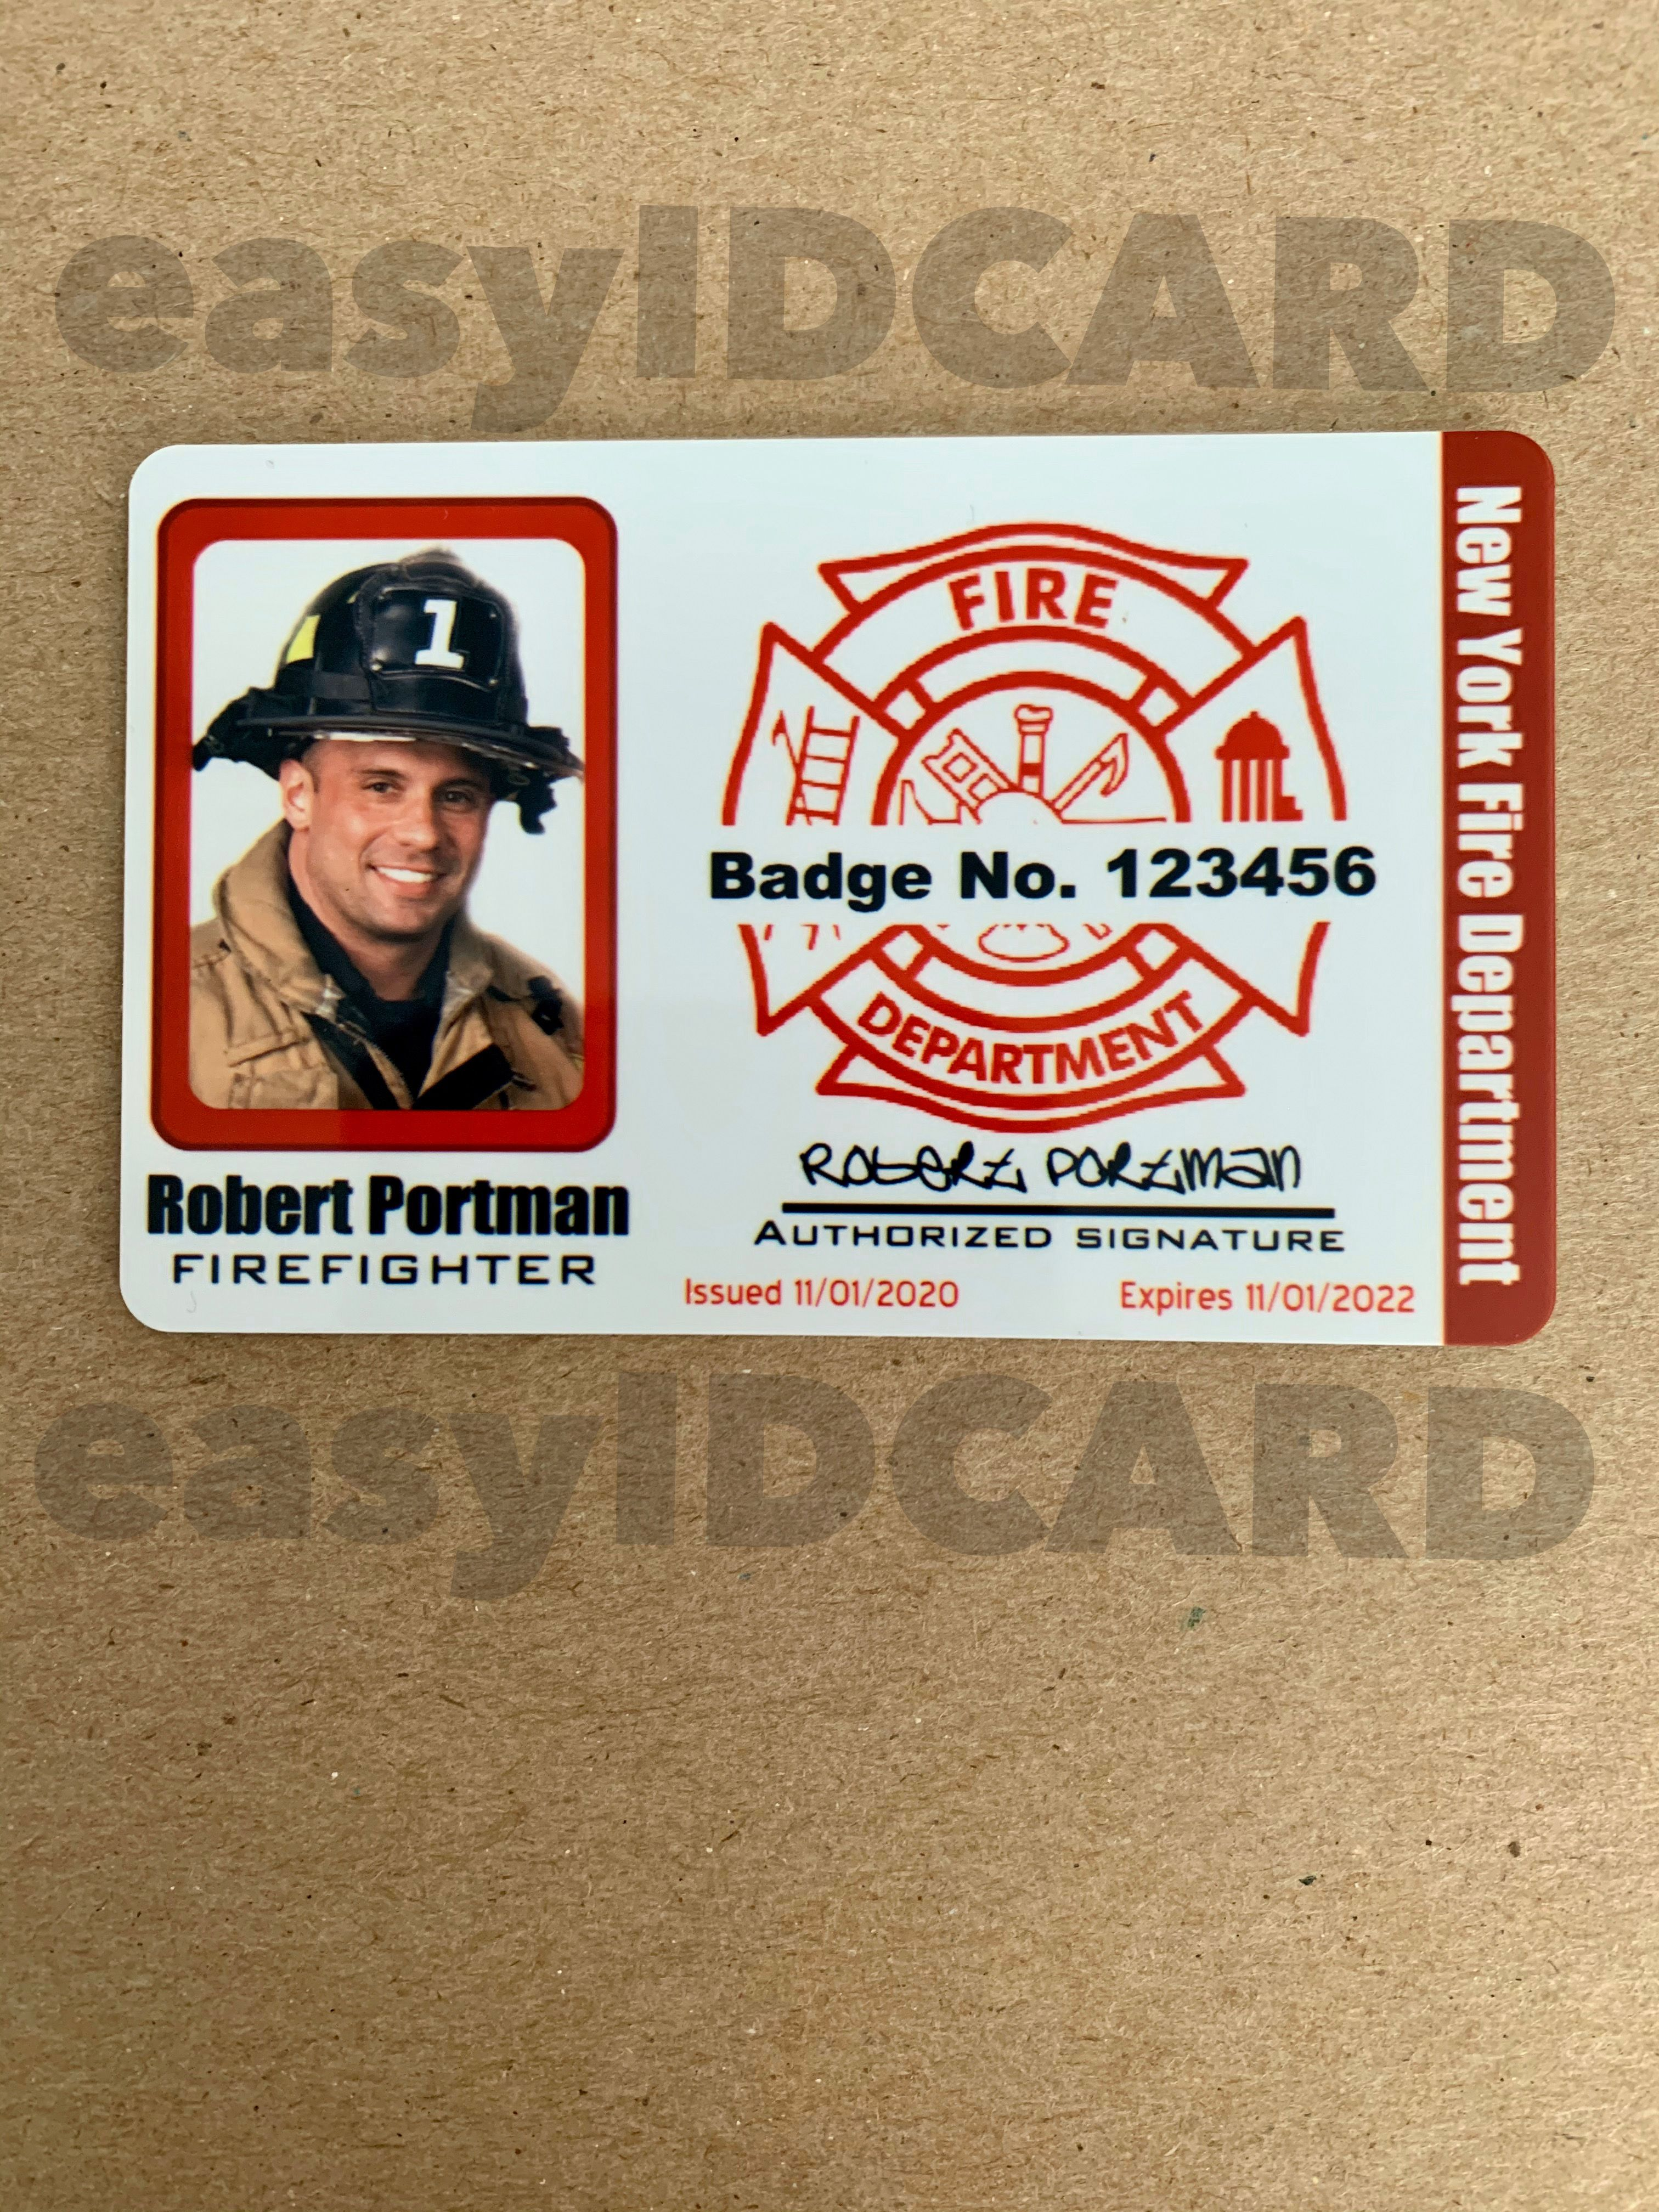 Firefighter Id Card Id Card Template Employee Id Card Cards